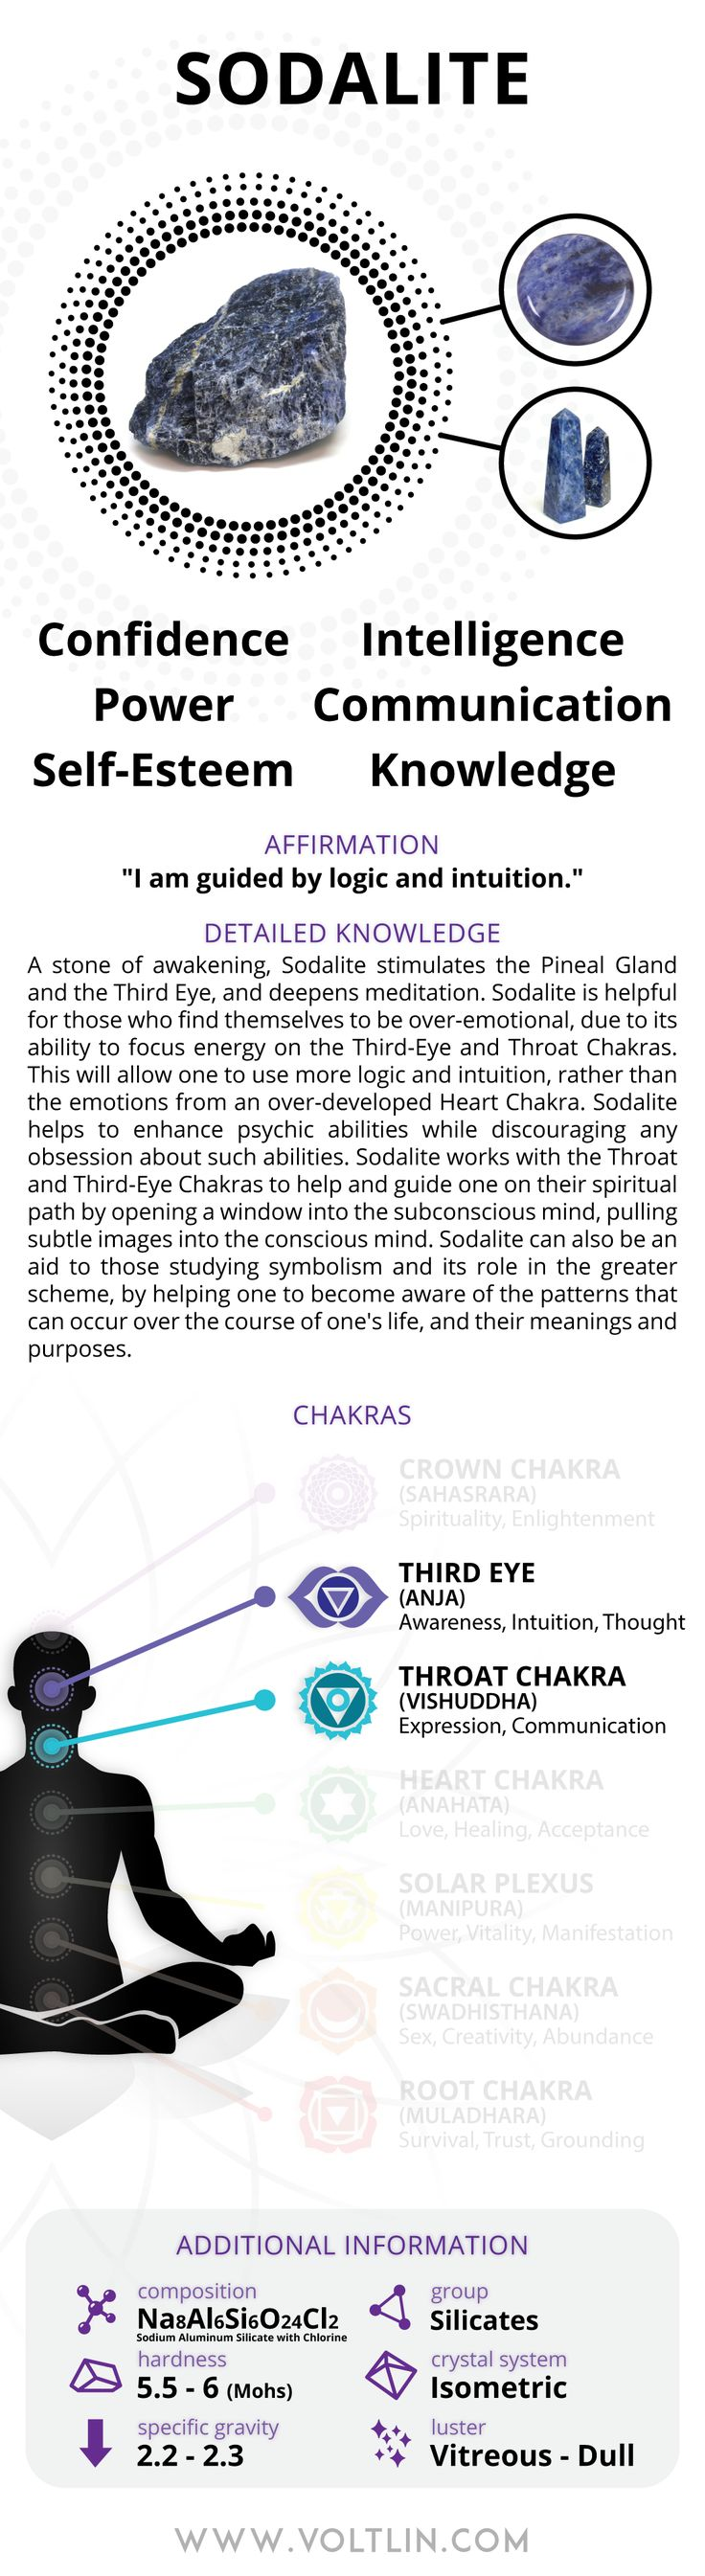 Express Shipping: 2-6 days (ships out within 1 business day) Warranty: Free repairs for up to 6 months Description A stone of awakening, Sodalite stimulates the Pineal Gland and the Third Eye, and dee